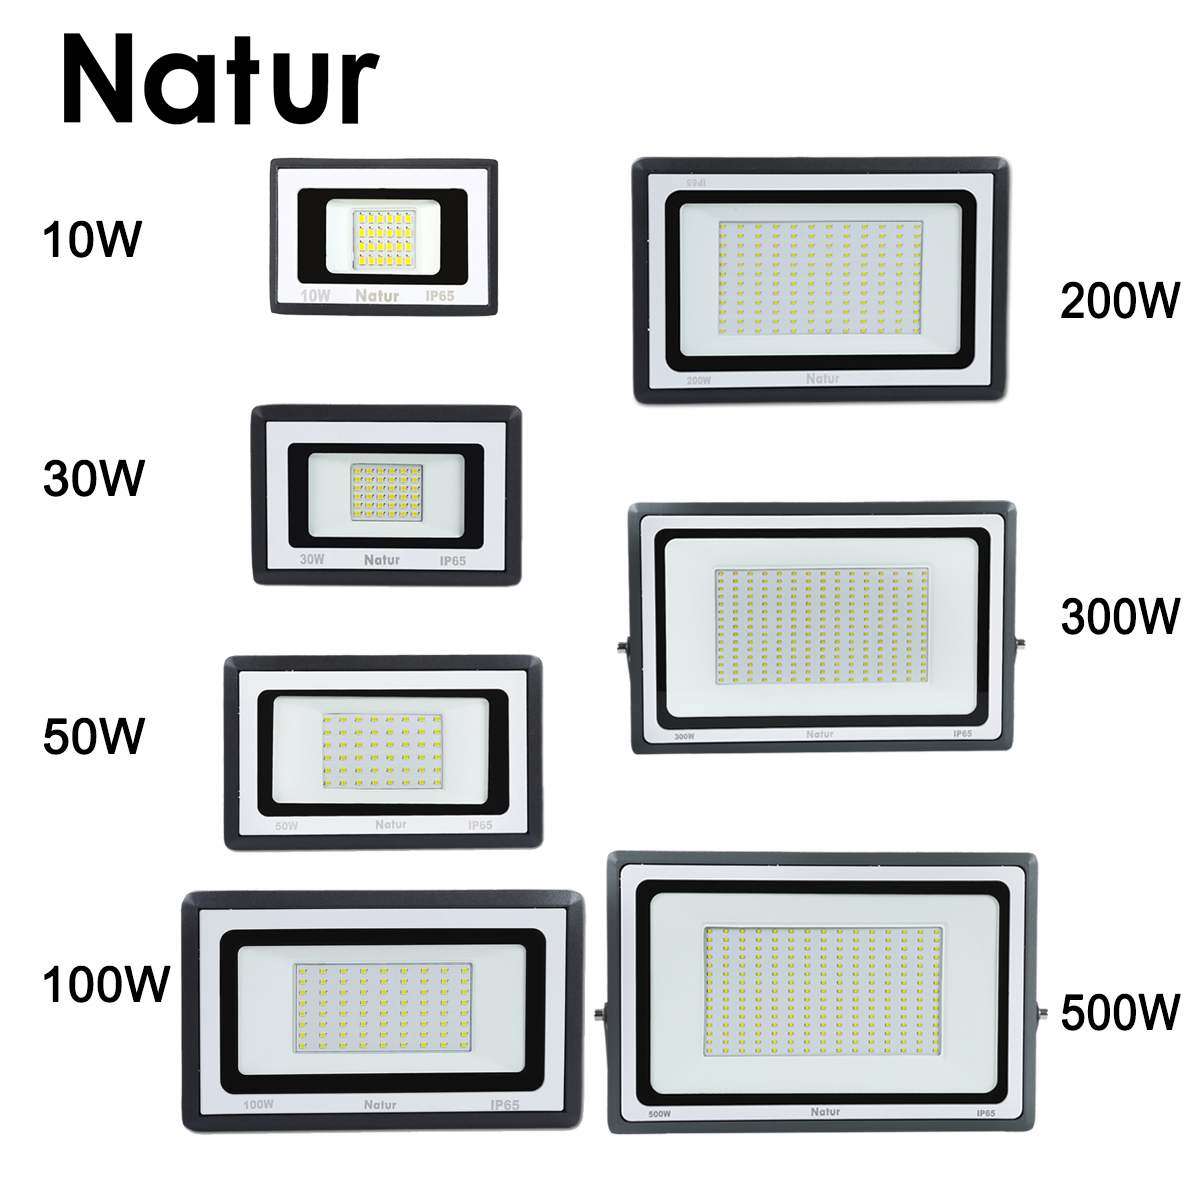 10W 30W 50W 100W 200W 300W 500W Led Spotlight 220V Led Floodlight Ip65 Waterproof Of Flood Light Outdoor Led Spotlight Reflector